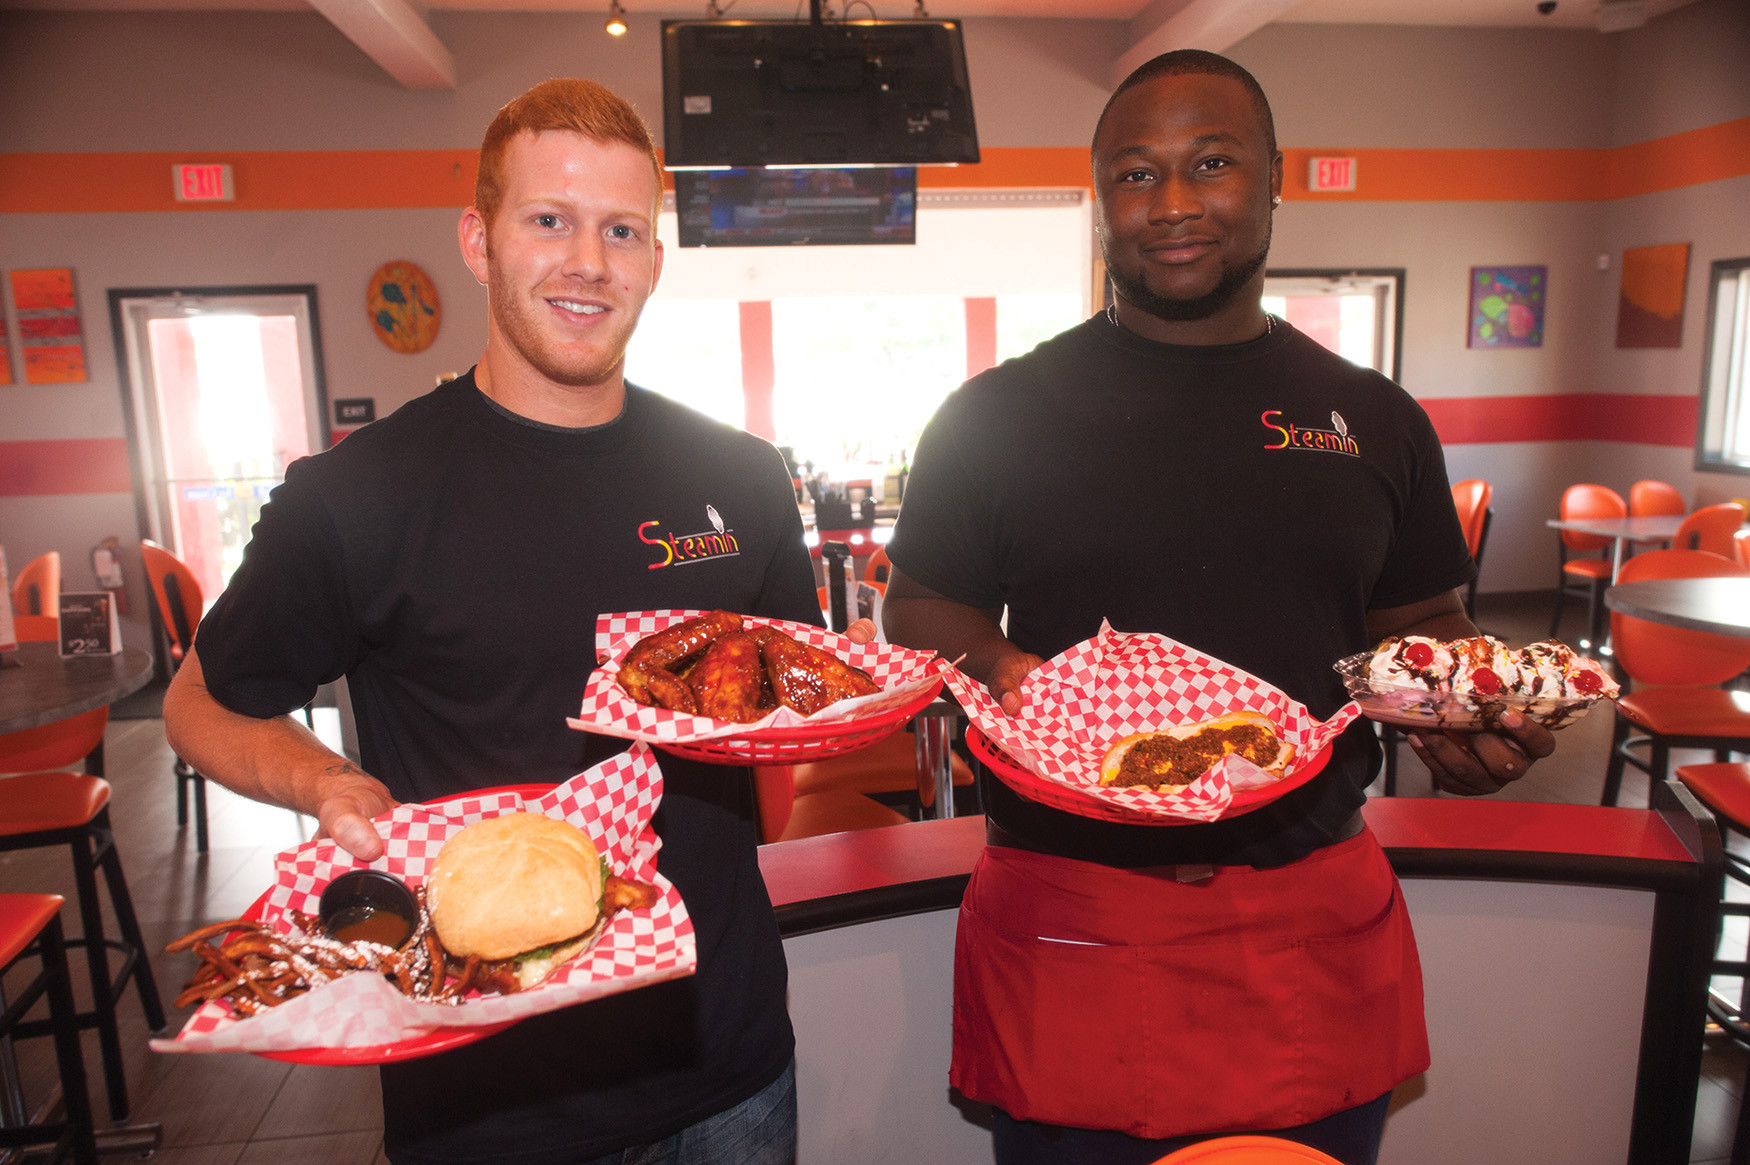 Steamin', home of the steam burger and fat dog in Mandarin, offers a Cheesy Steamer, Mumba wings, Fat Dog and caramelized banana split served by Kyle French and Derek Huggins.